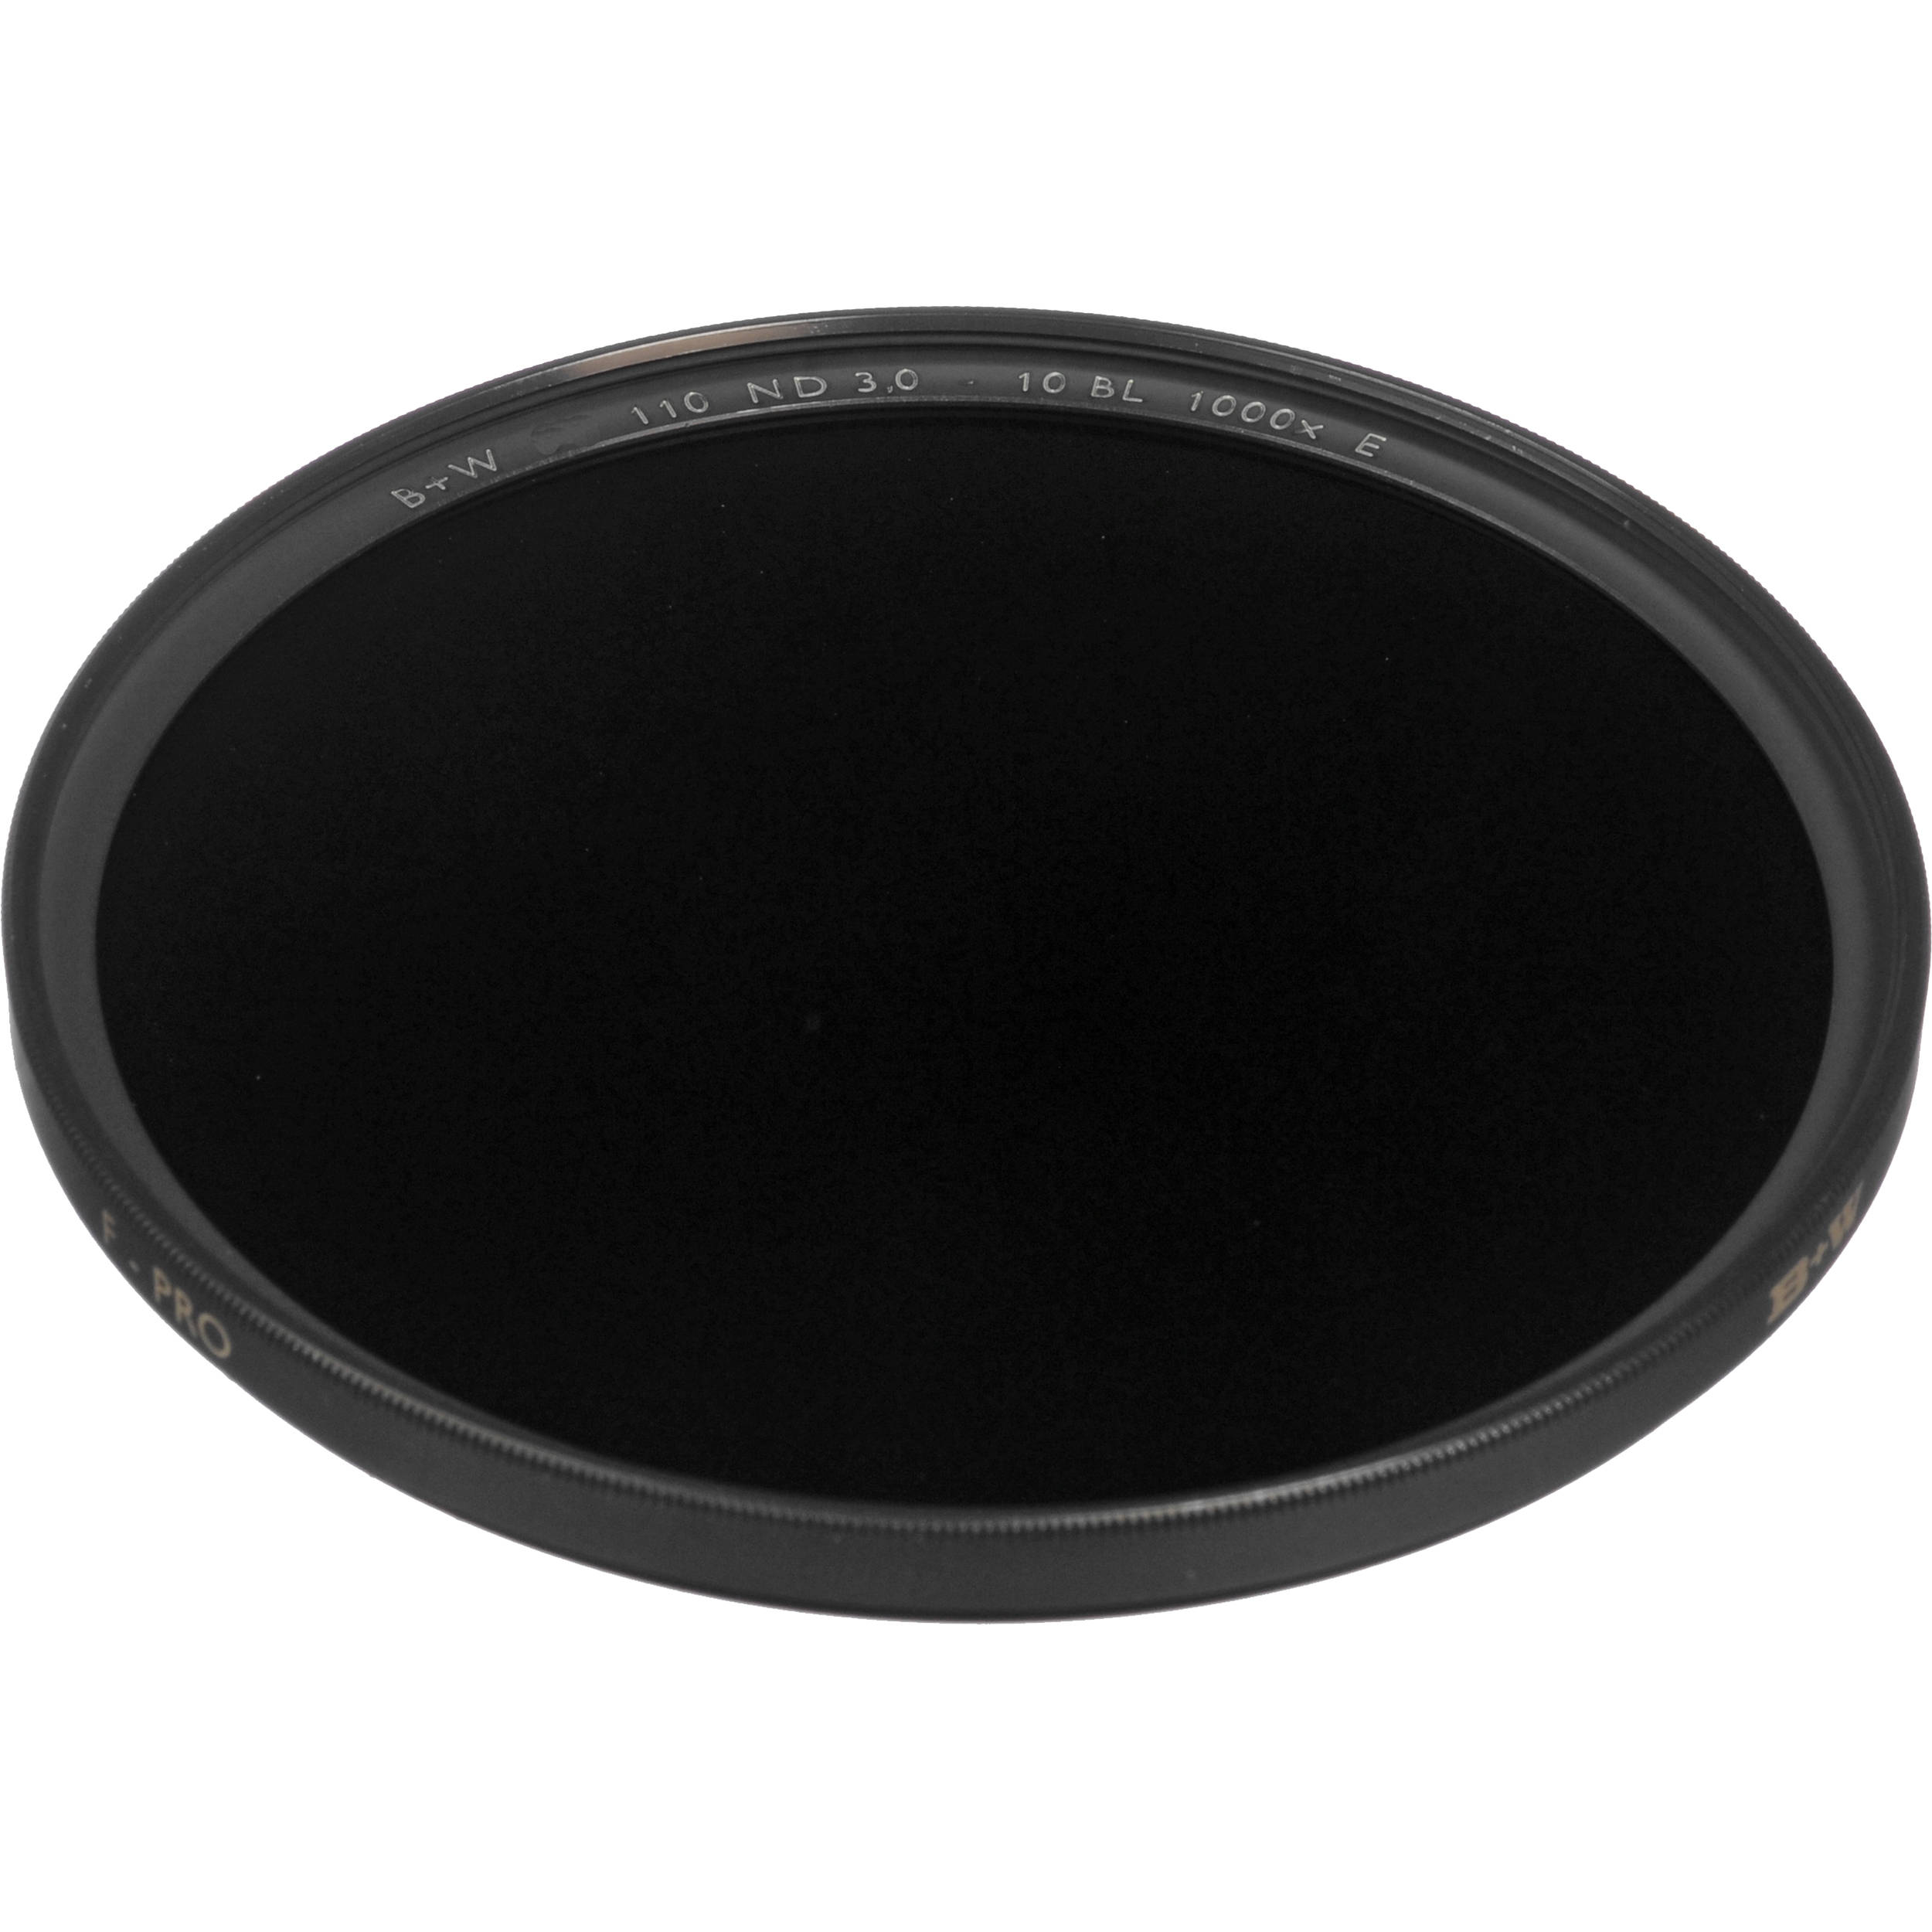 Breakthrough Photography 77mm X4 15-Stop Fixed ND Filter for Camera Lenses Neutral Density Professional Photography Filter Schott B270 Glass Nanotec MRC16 WeatherSealed Ultra-Slim